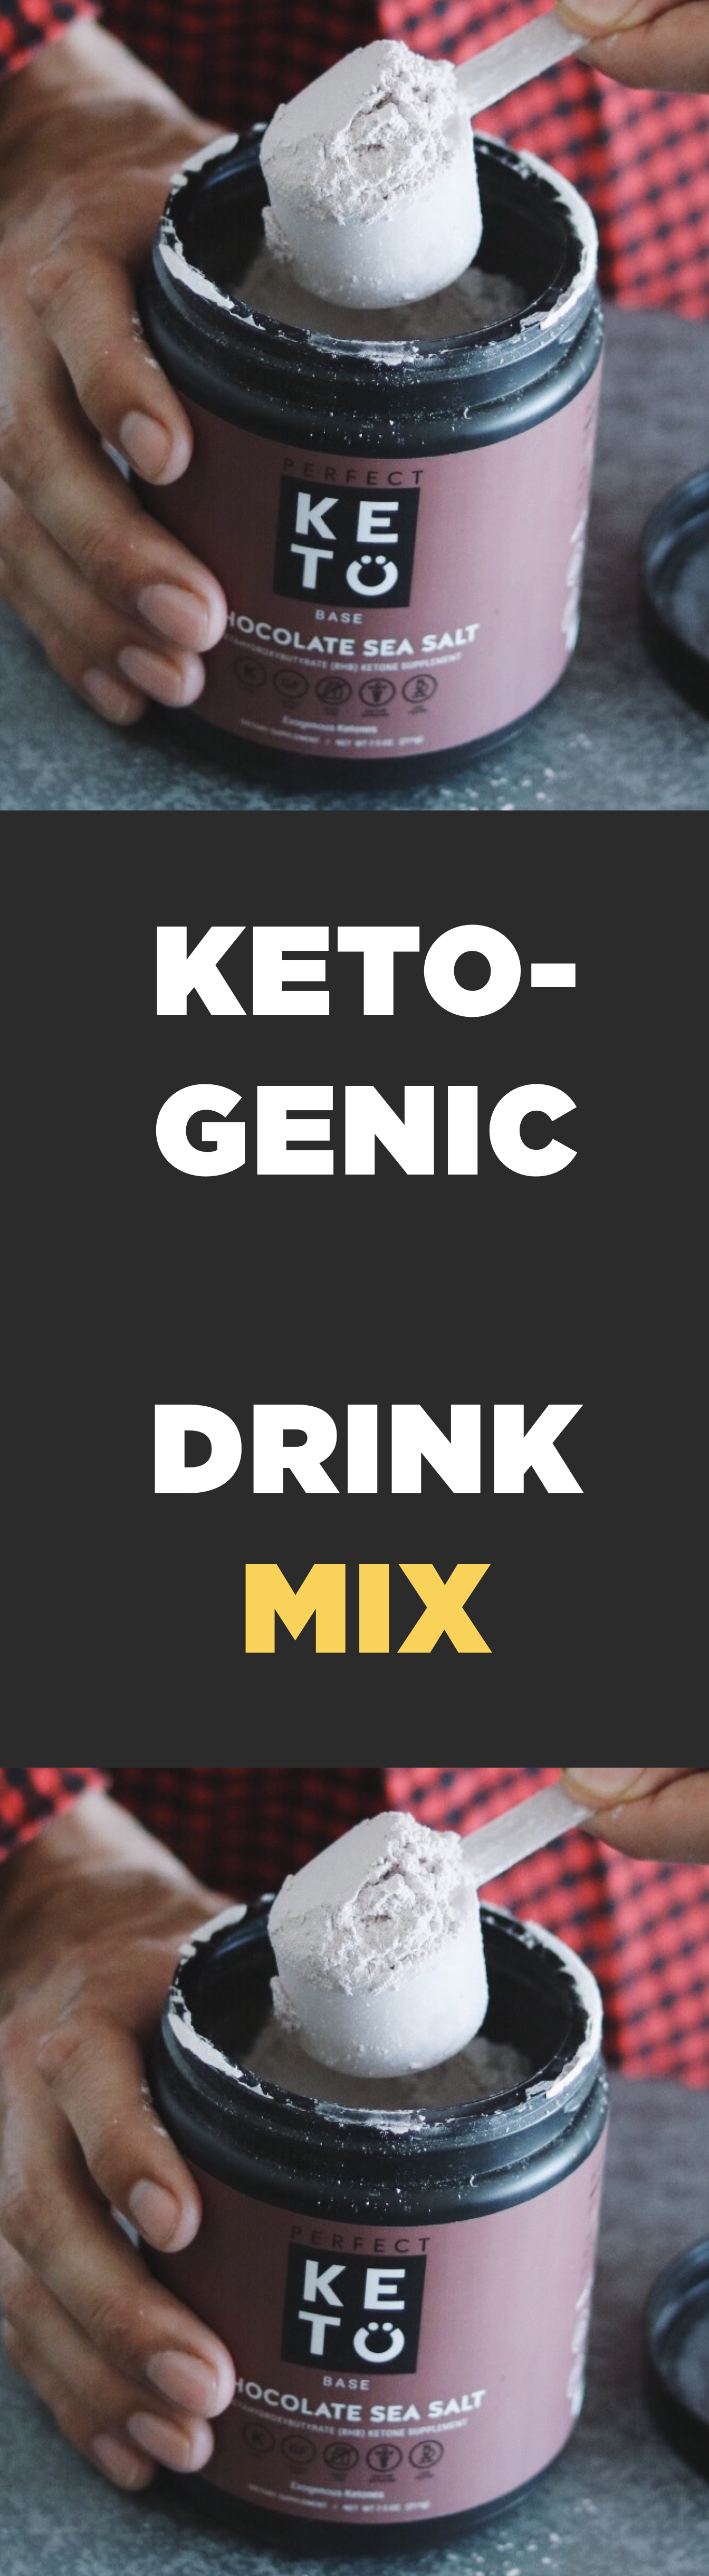 Ketogenic diet drink mix. Doctor developed. No fillers. in